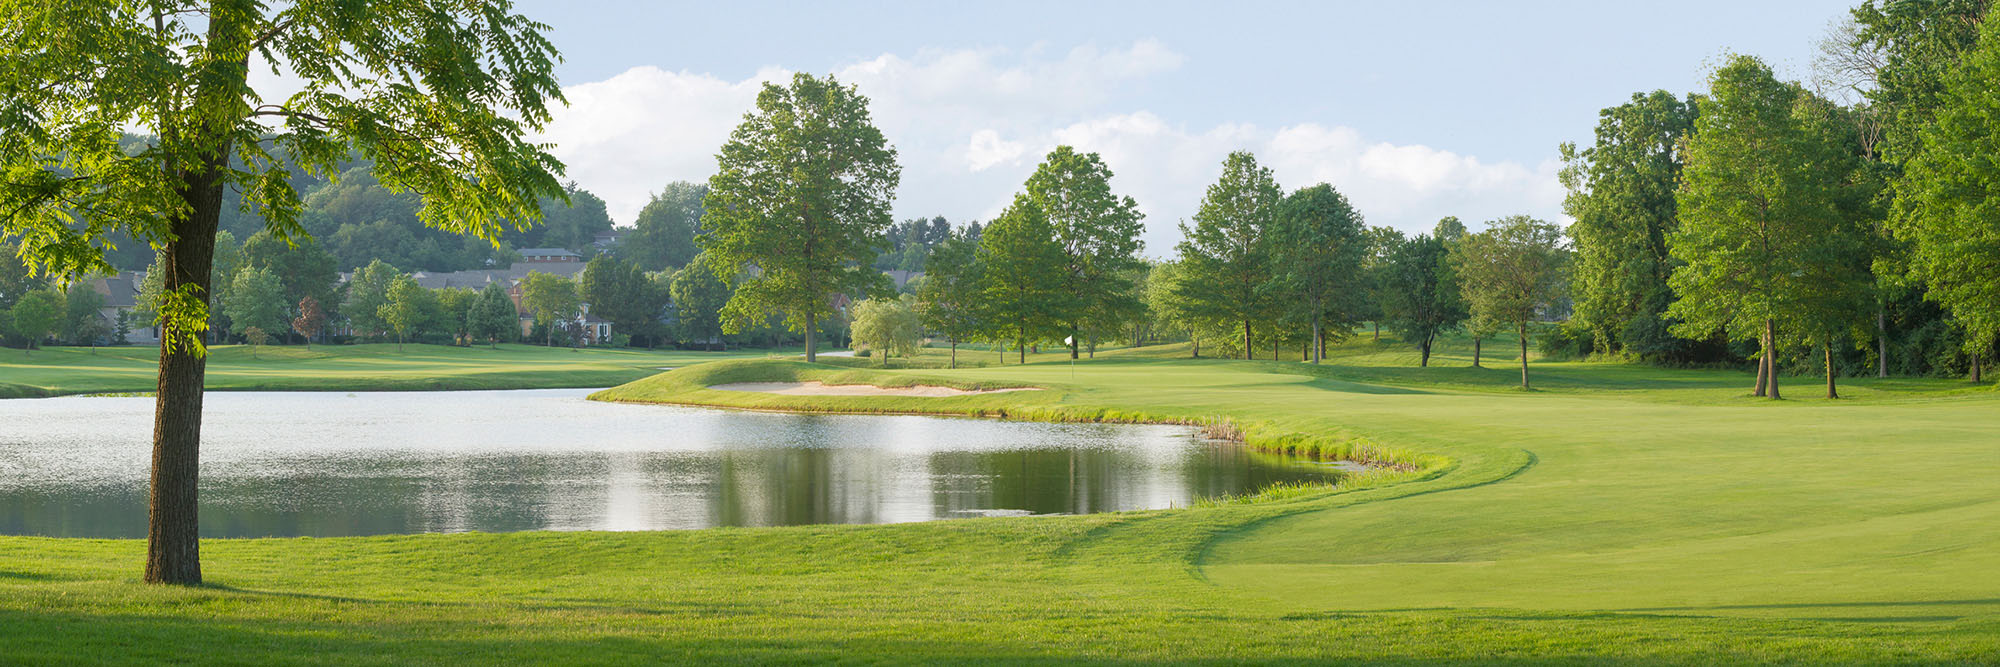 Golf Course Image - Glenmoor Country Club No. 13